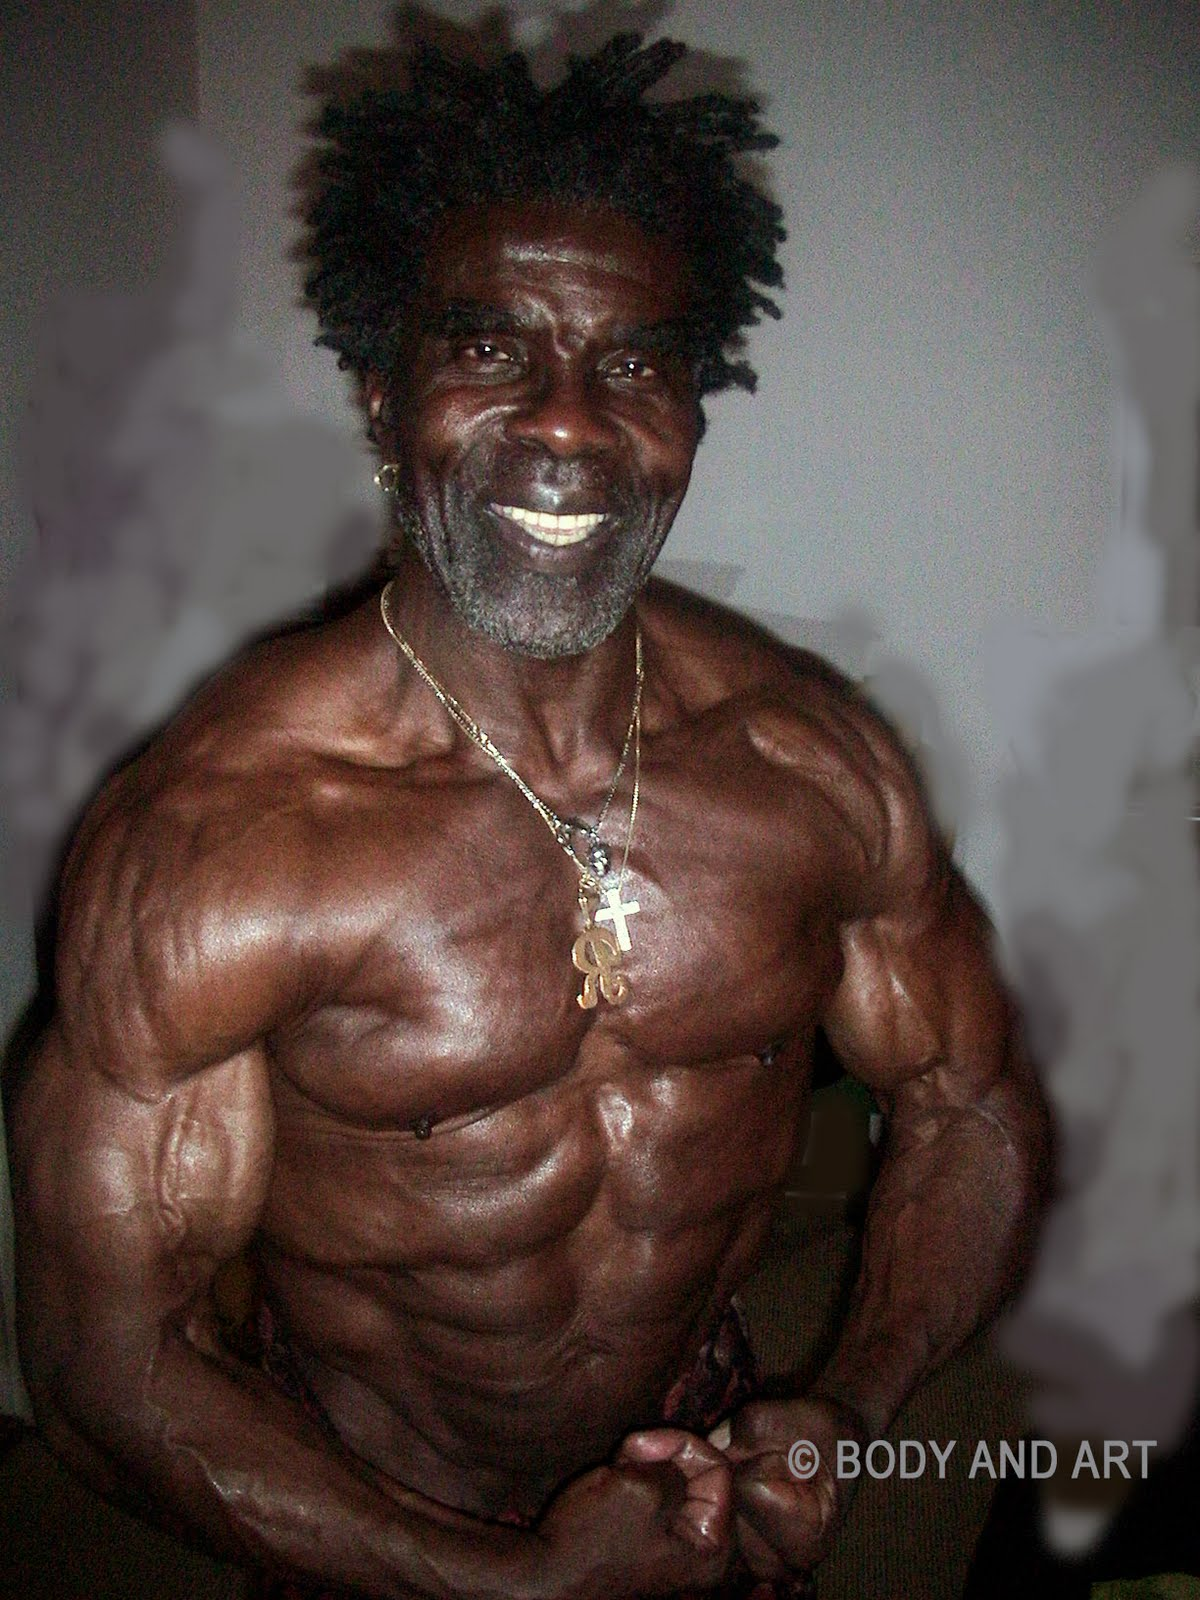 ROBBY ROBINSON AT 64, FIRST MR OLYMPIA MASTERS 1994